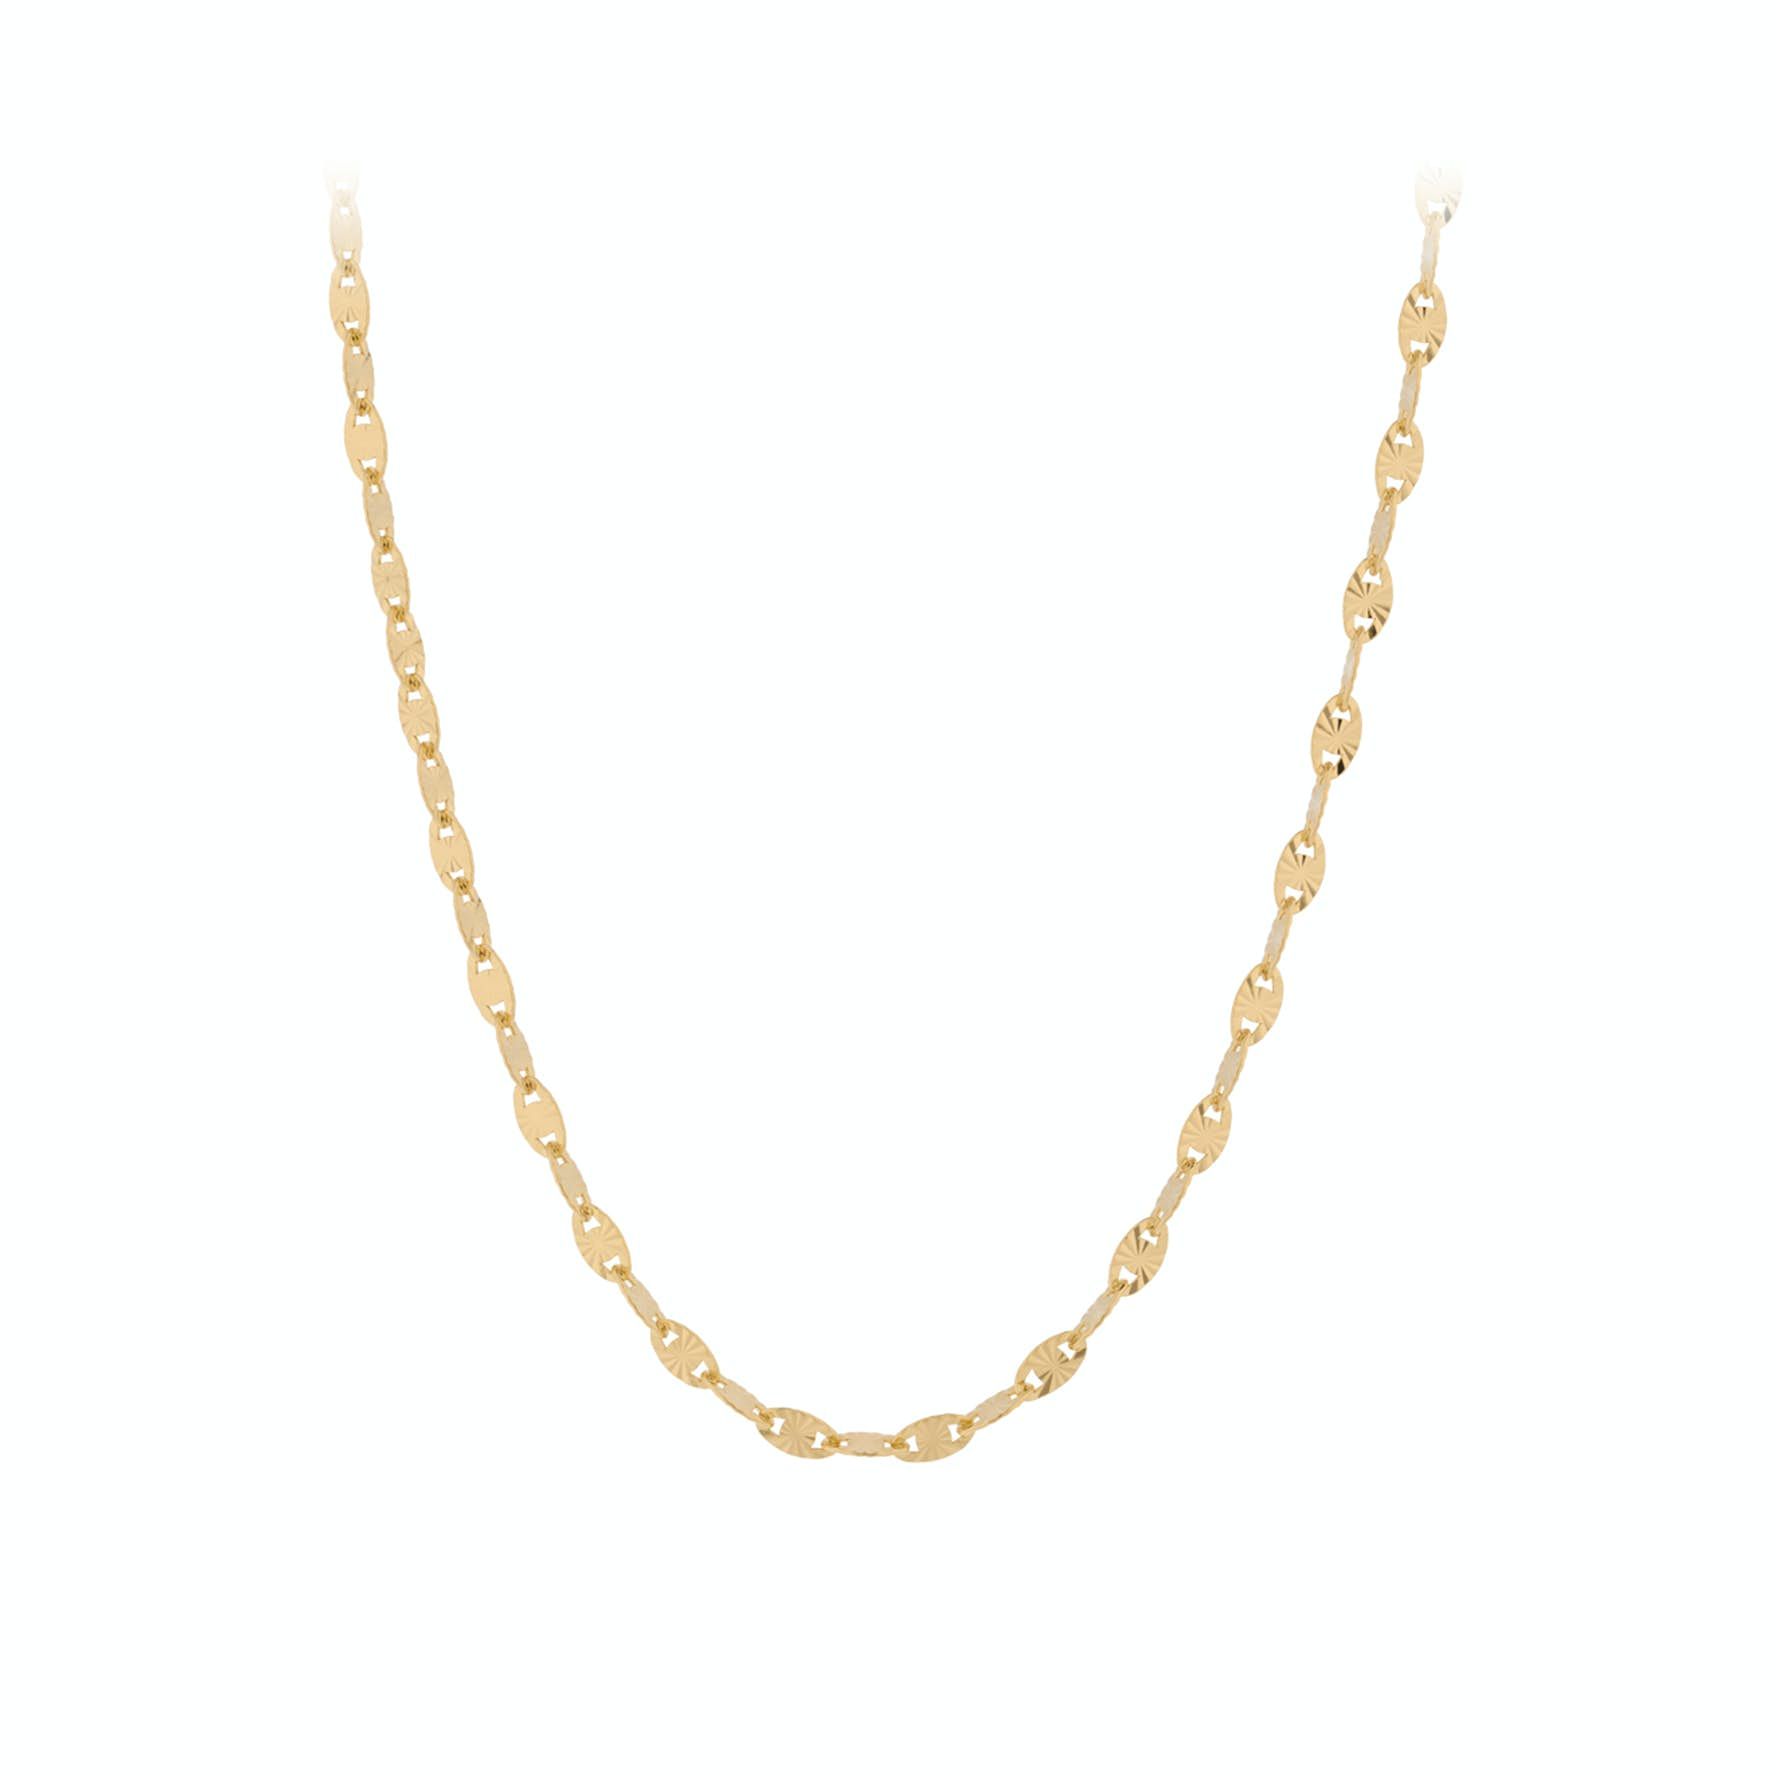 Ocean Stars Necklace from Pernille Corydon in Goldplated-Silver Sterling 925